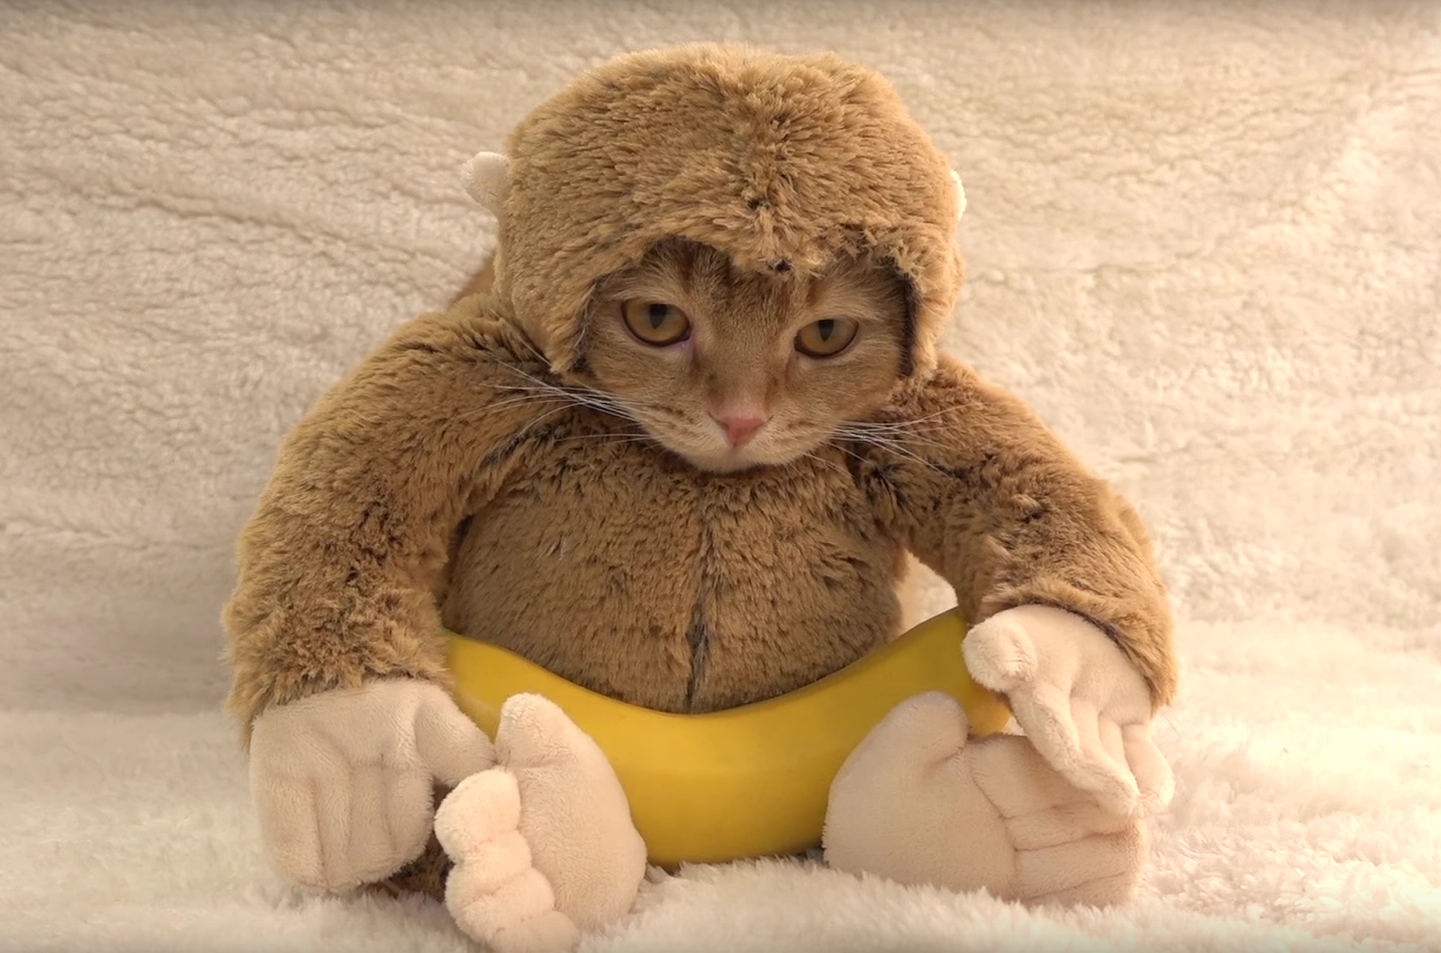 Bizarre Video Just a Cat in a Monkey Suit, Eating a